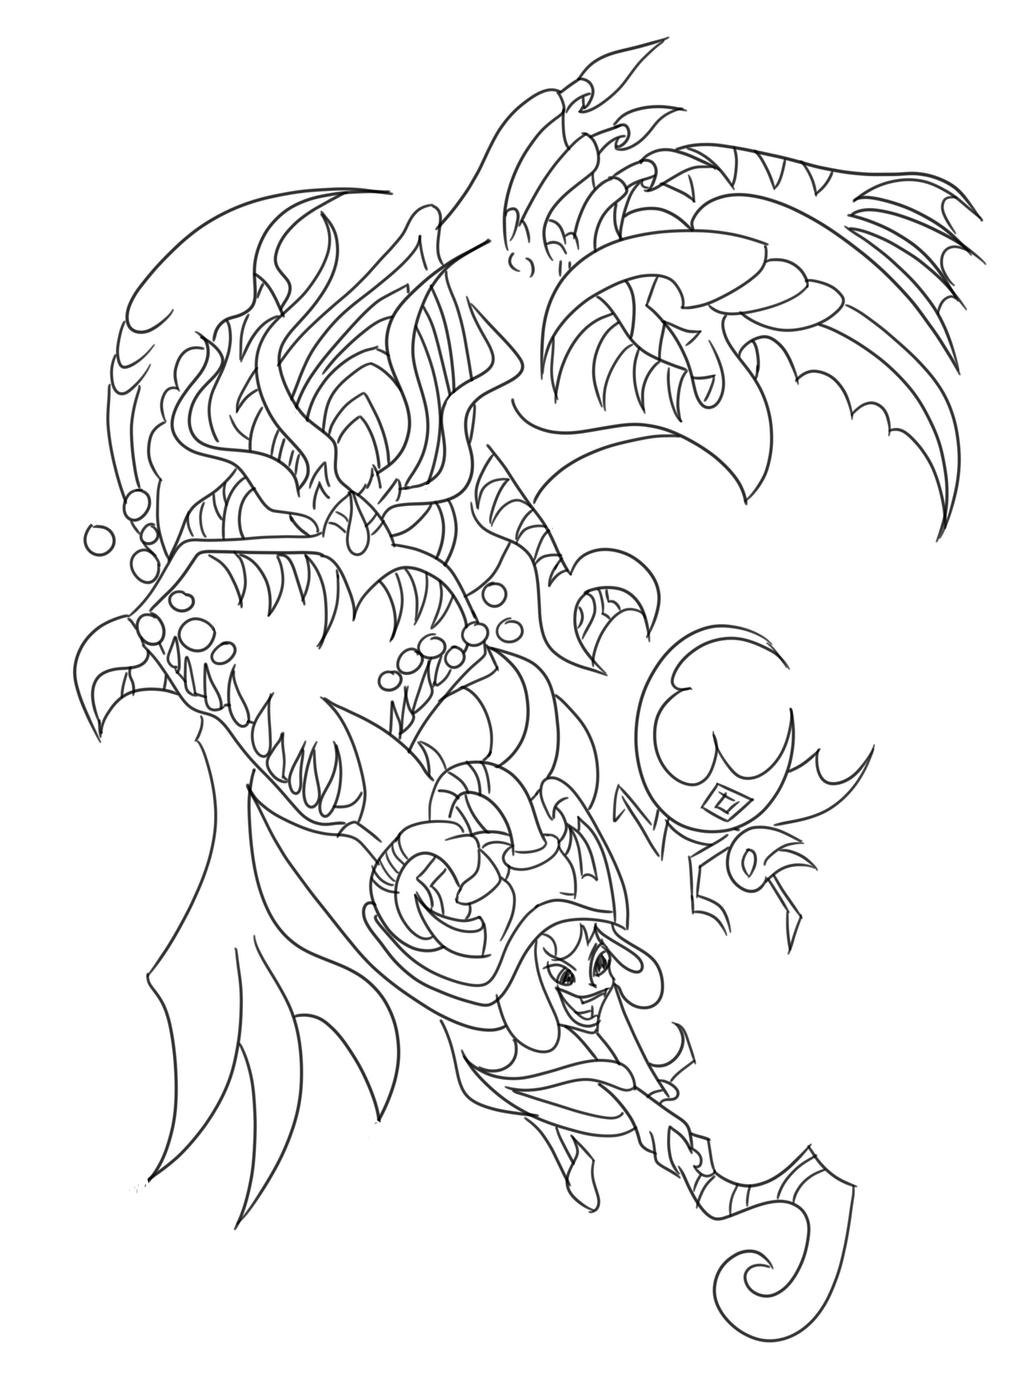 Coloring Pages Disney Lol : Lol surprise doll sheets coloring pages